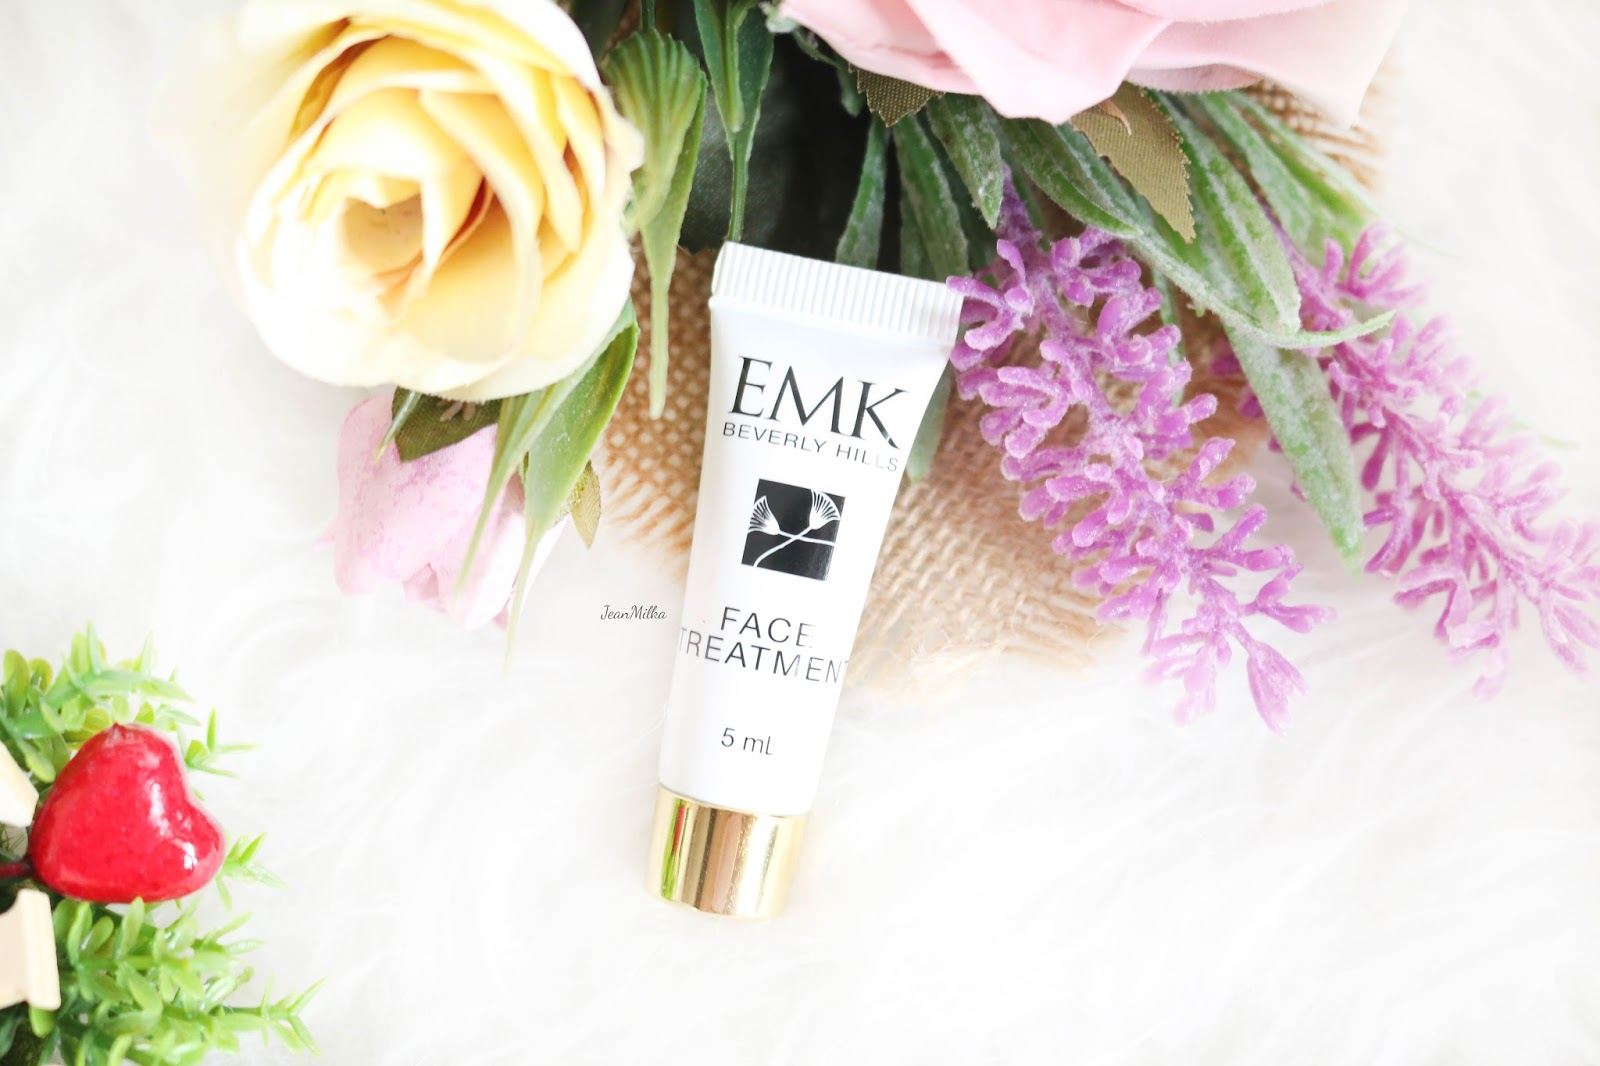 emk, emk beverly hills, review emk beverly hills, emk beverly hills skincare, skicare, review, product review, acne skincare, kulit berjerawat, emk face treatment